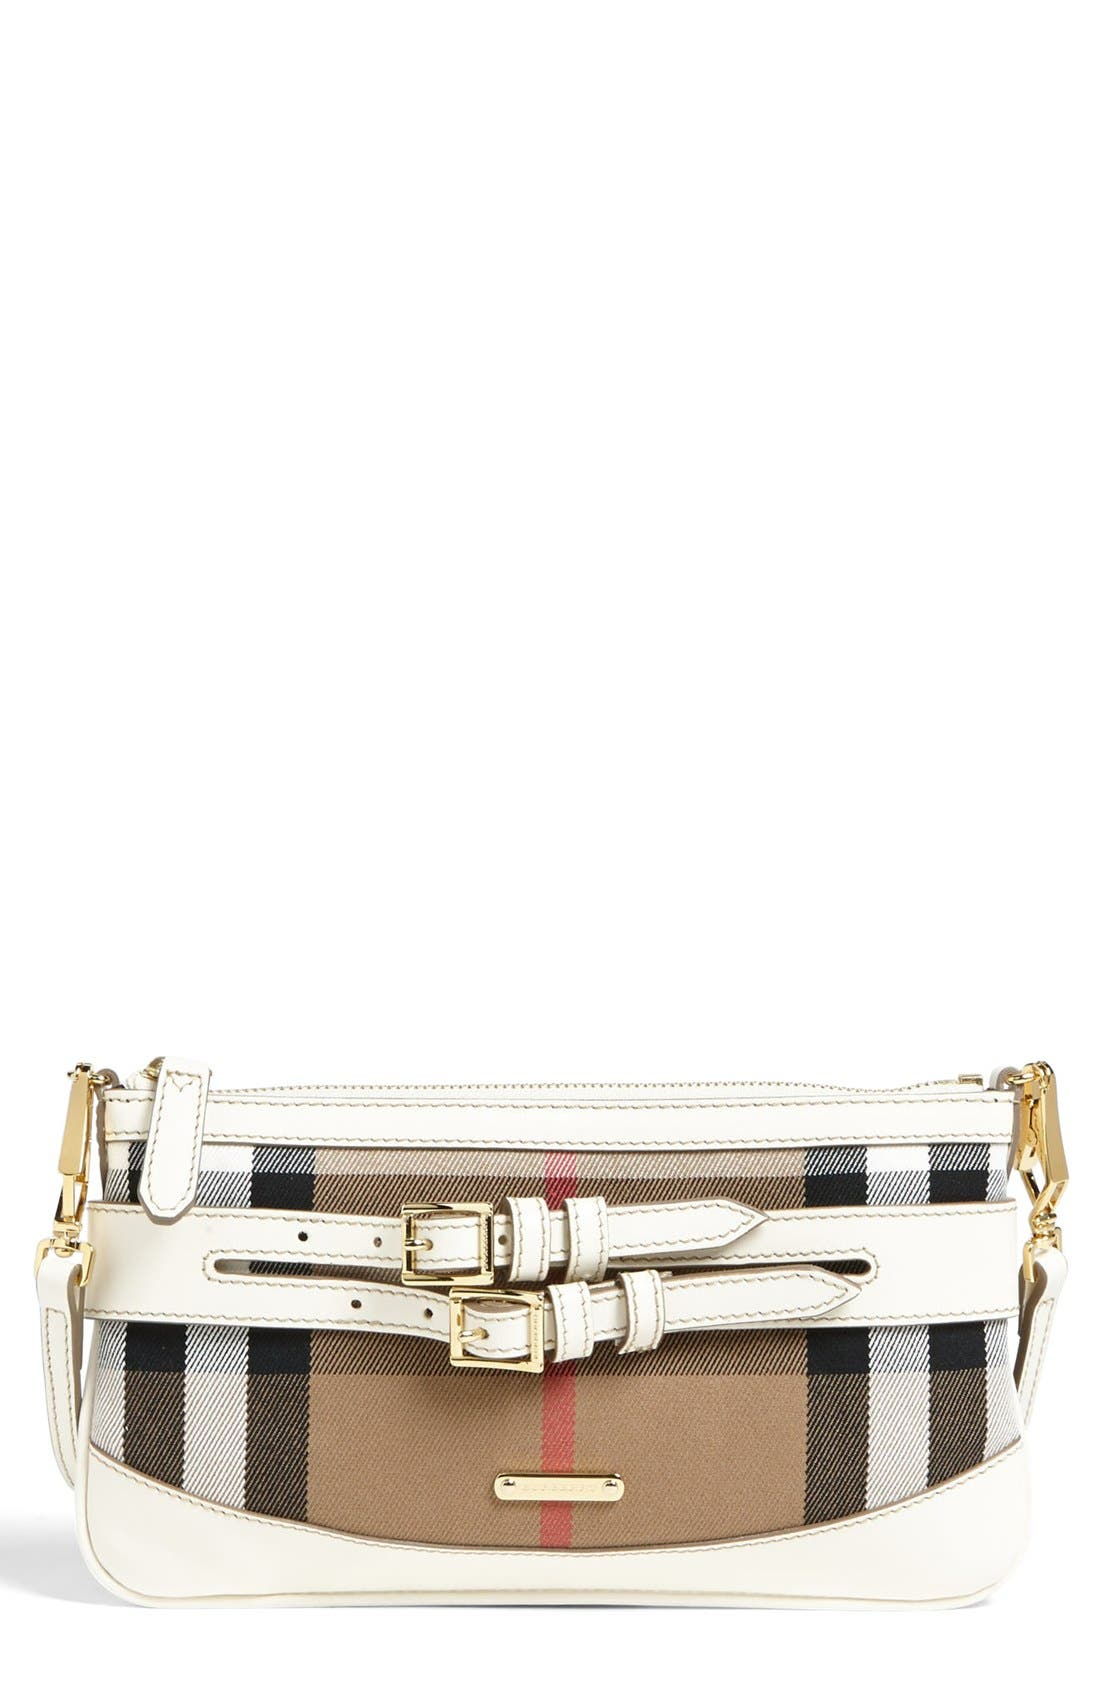 Main Image - Burberry 'House Check' Crossbody Clutch